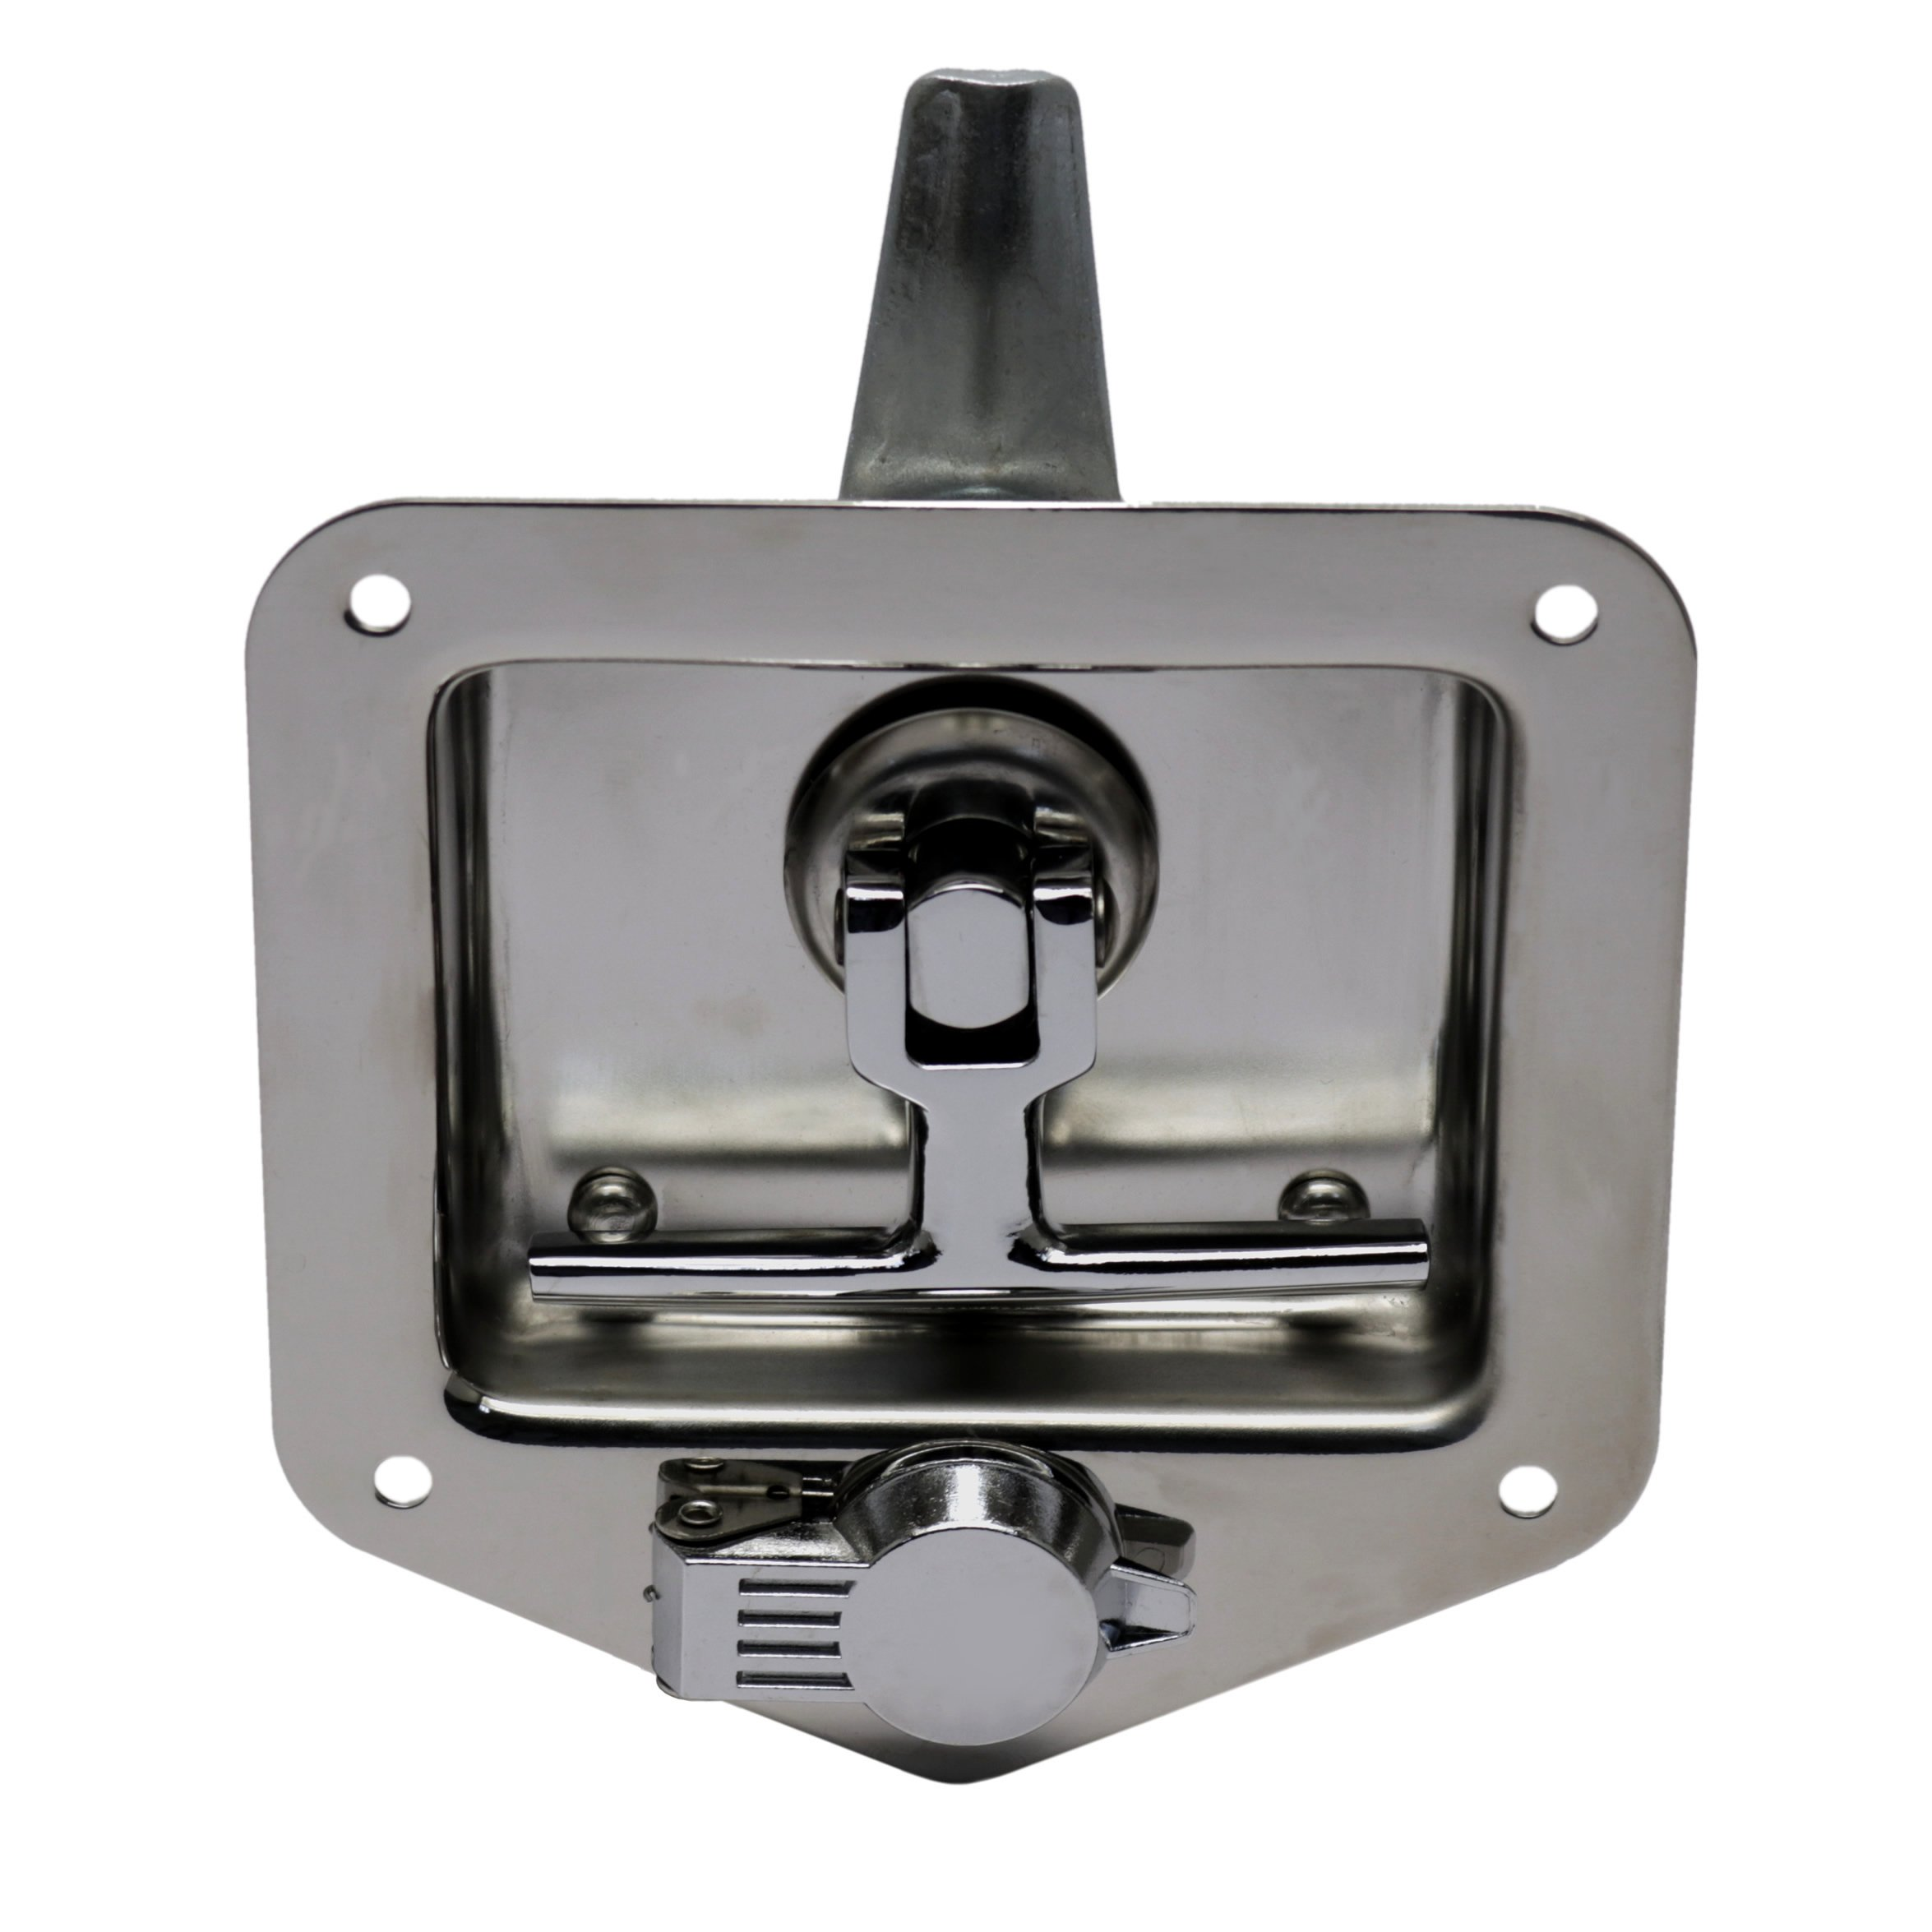 TCH Hardware Stainless Steel T-Handle Latch with Mounting Holes & Lock Dust Cover - Folding T Handle Latch RV Camper Truck Trailer Toolbox